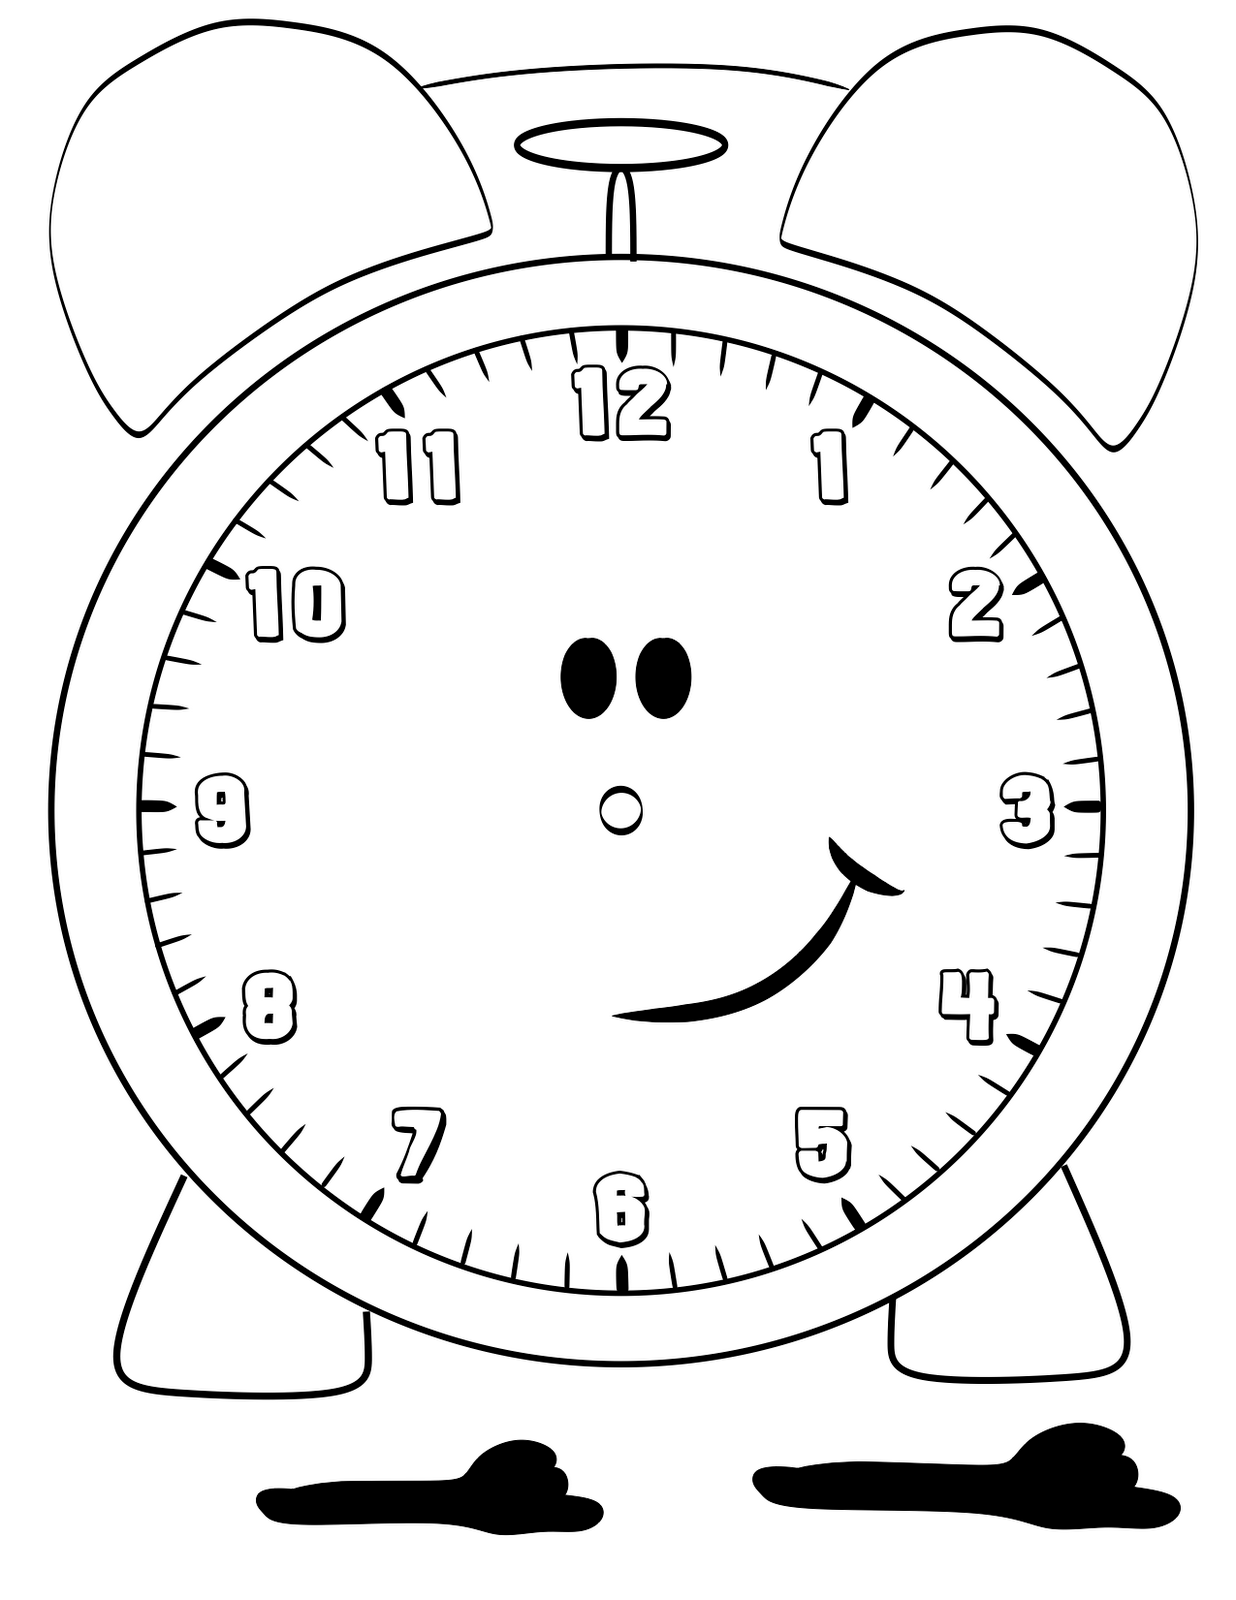 Blank Clock Faces For Kids